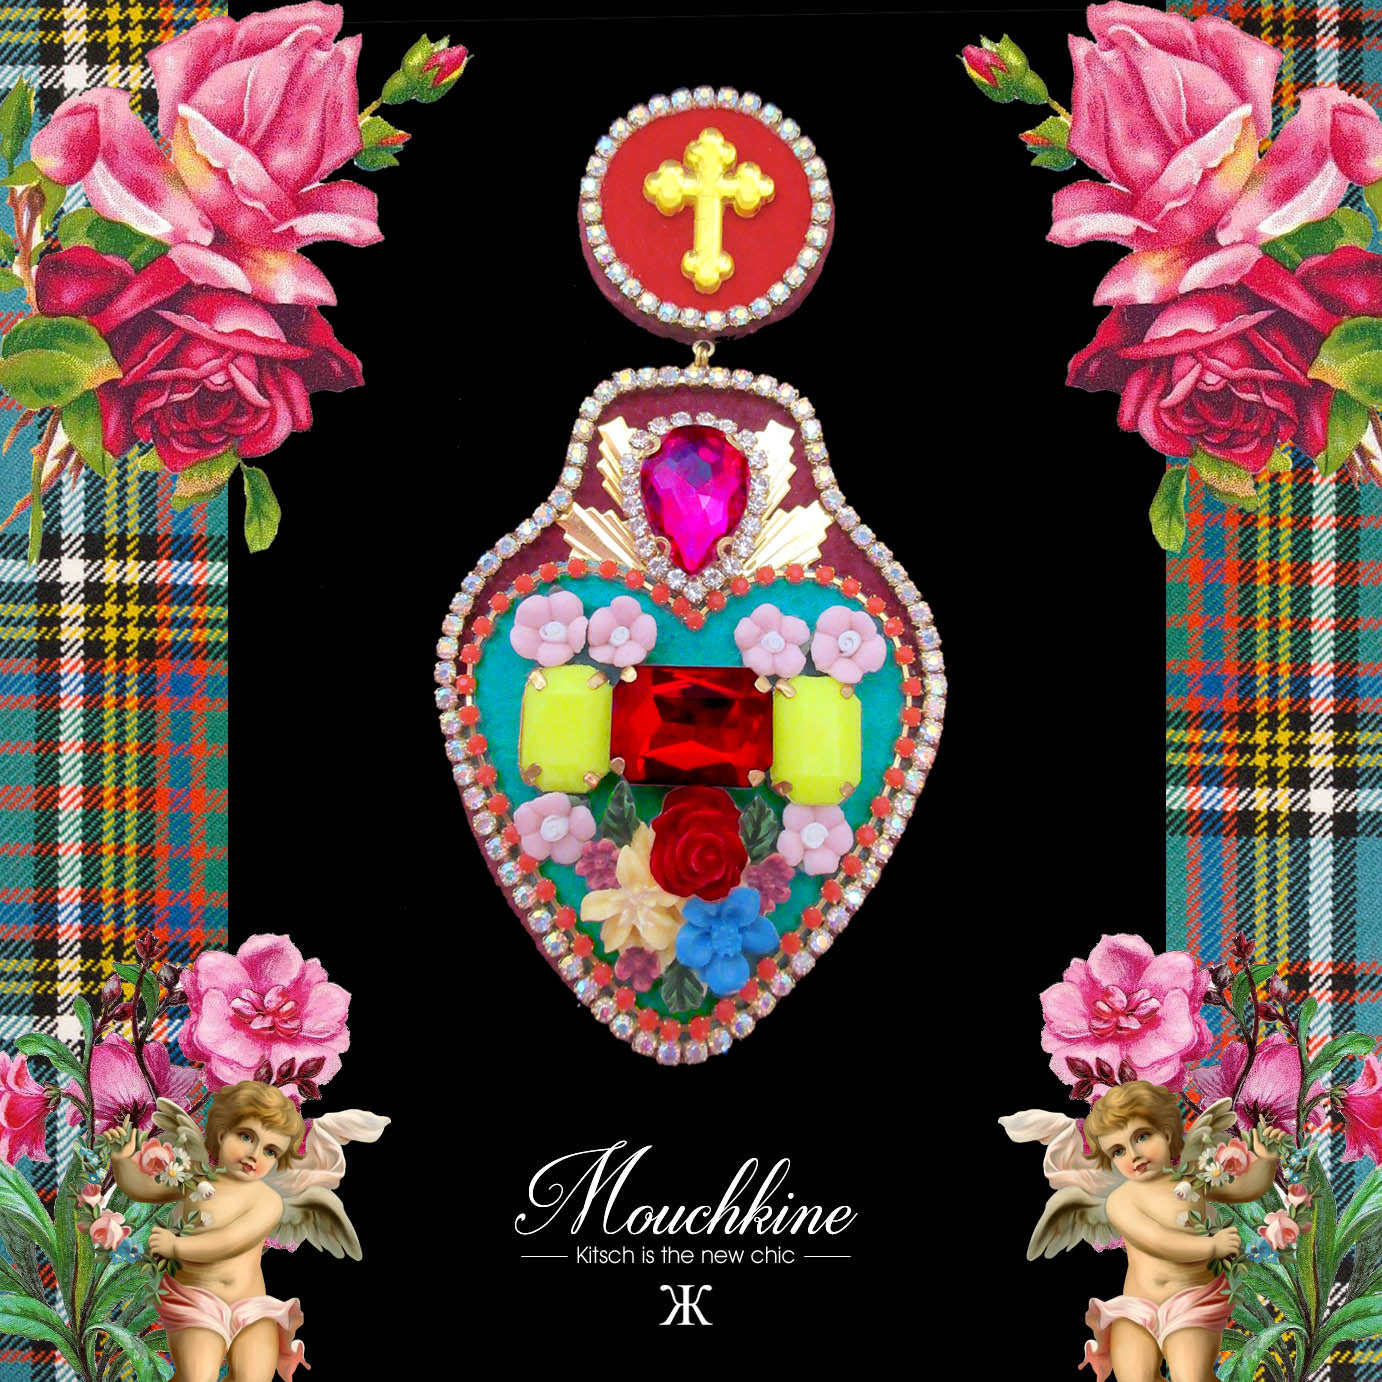 mouchkine jewelry earrings chic and trendy made in france couture stylish accessory